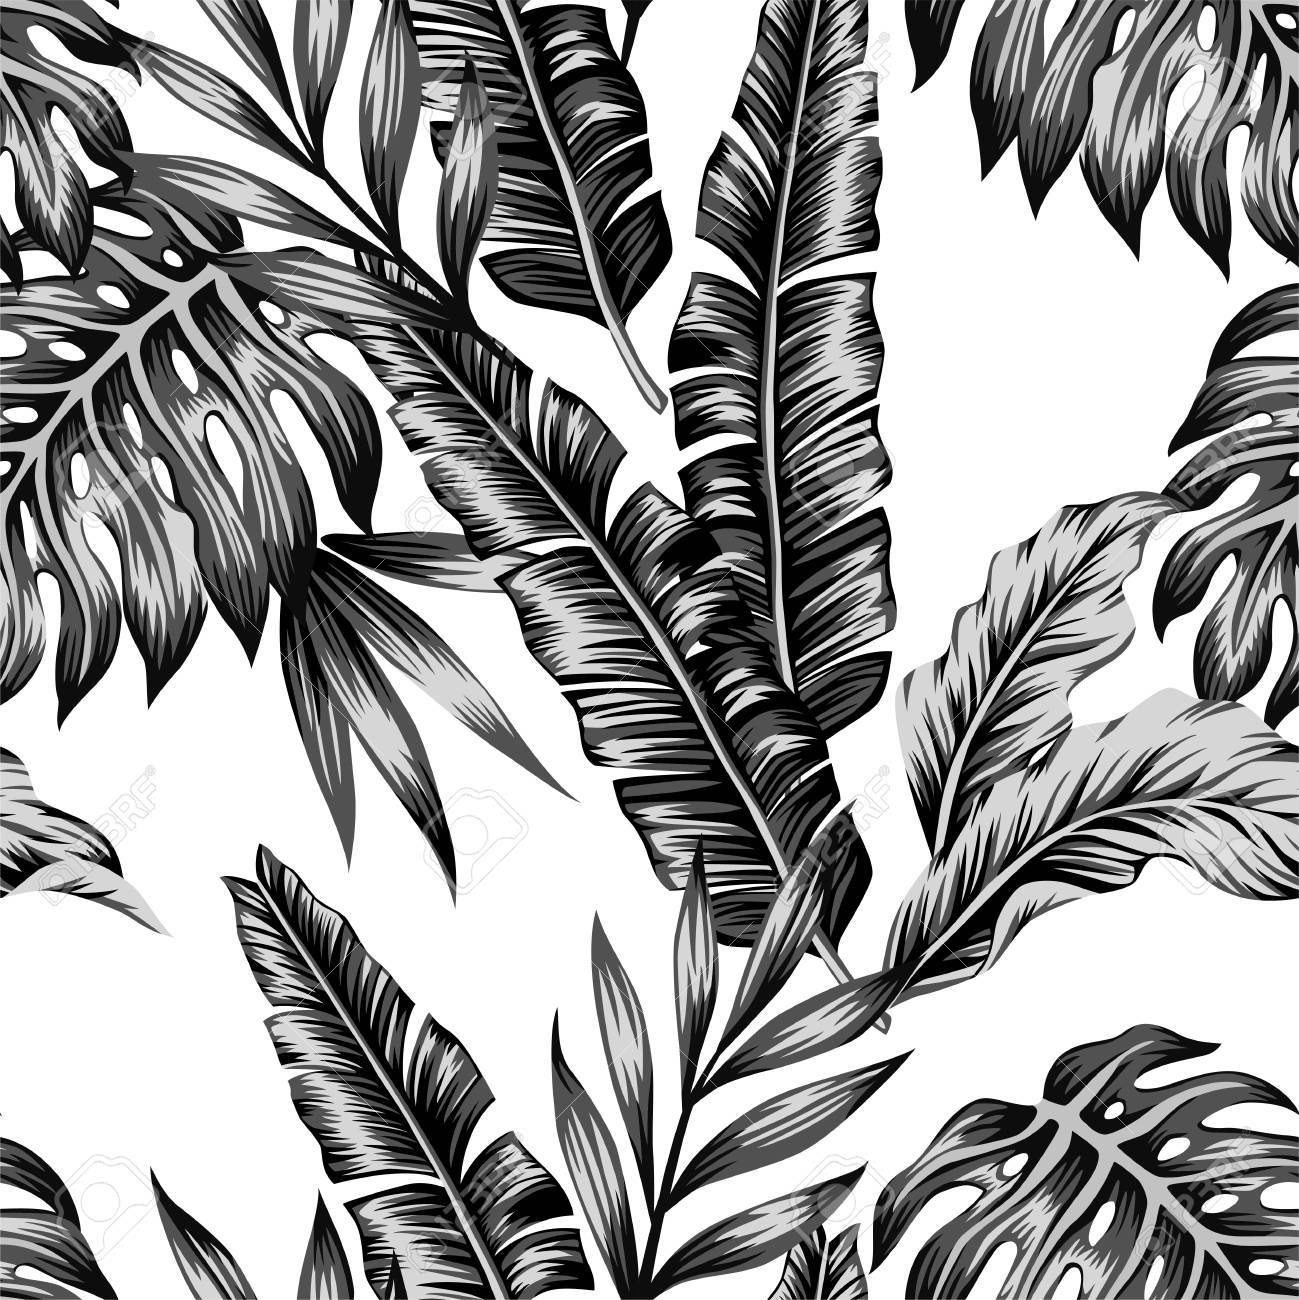 Tropic Plants Floral Seamless Jungle Pattern Print Background